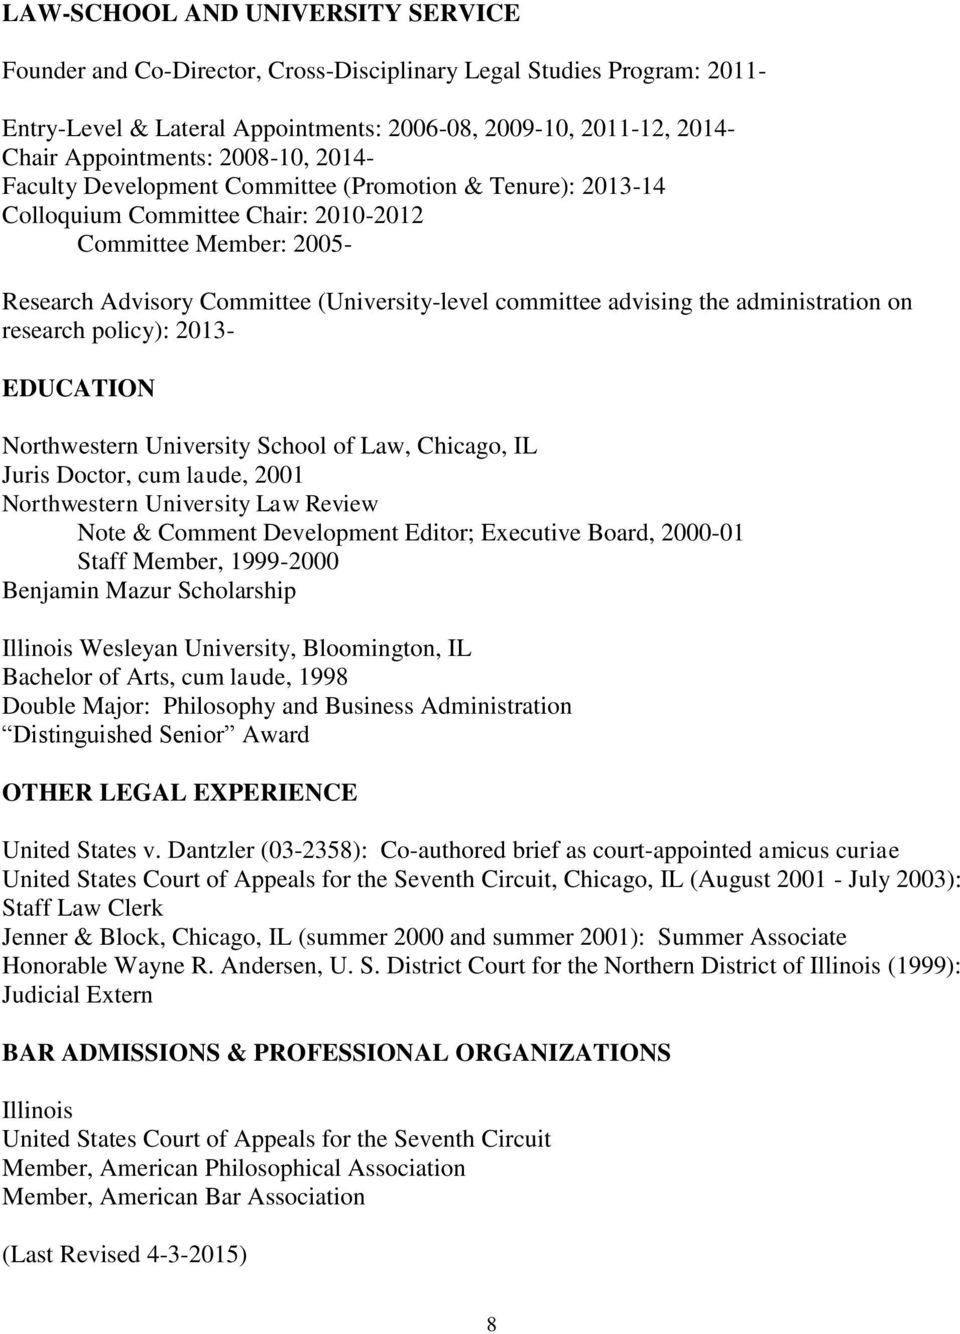 advising the administration on research policy): 2013- EDUCATION Northwestern University School of Law, Chicago, IL Juris Doctor, cum laude, 2001 Northwestern University Law Review Note & Comment